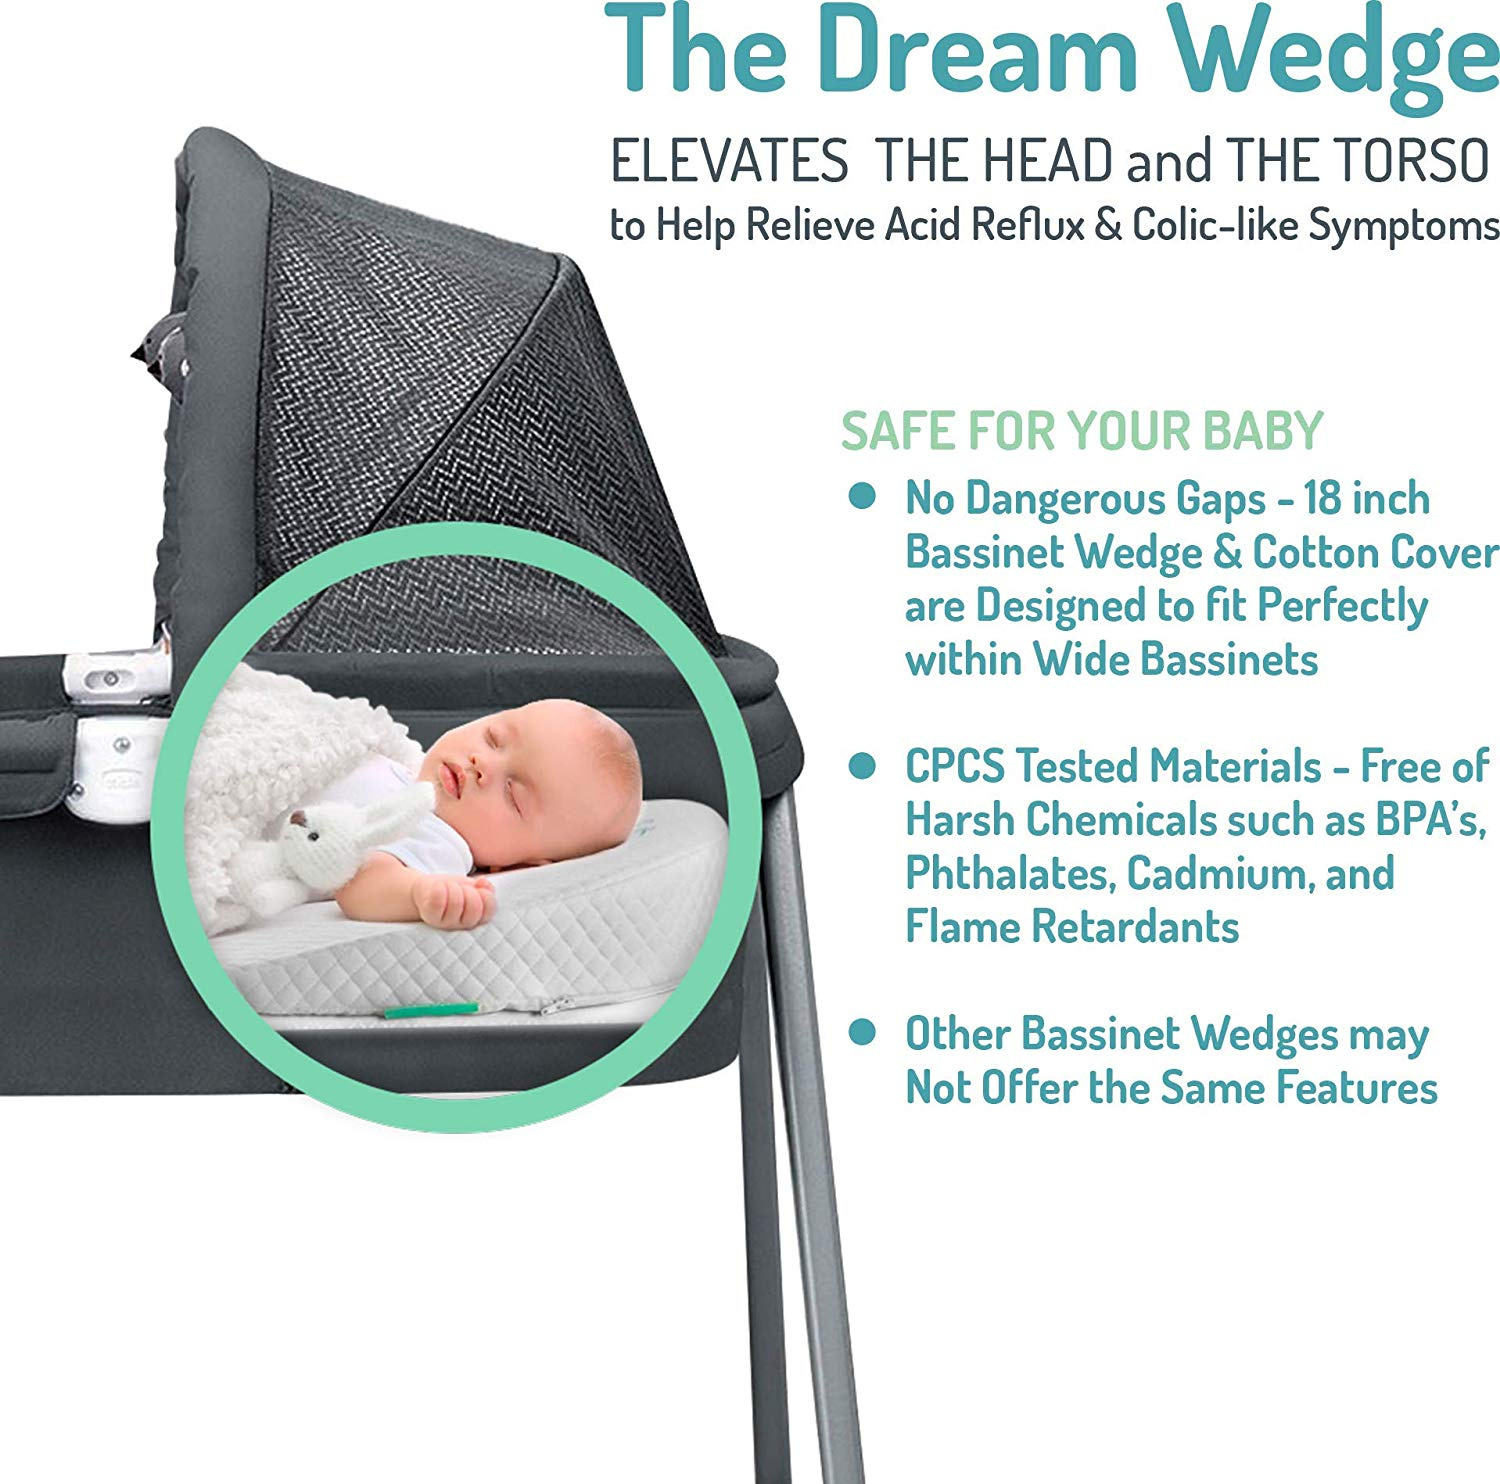 Newborn Bassinet Reflux Cher Bébé Dream Wedge Oval Baby Bassinet Pillow High Incline For Reflux And Colic Cotton And Waterproof Covers Sleep Positioner For Halo And